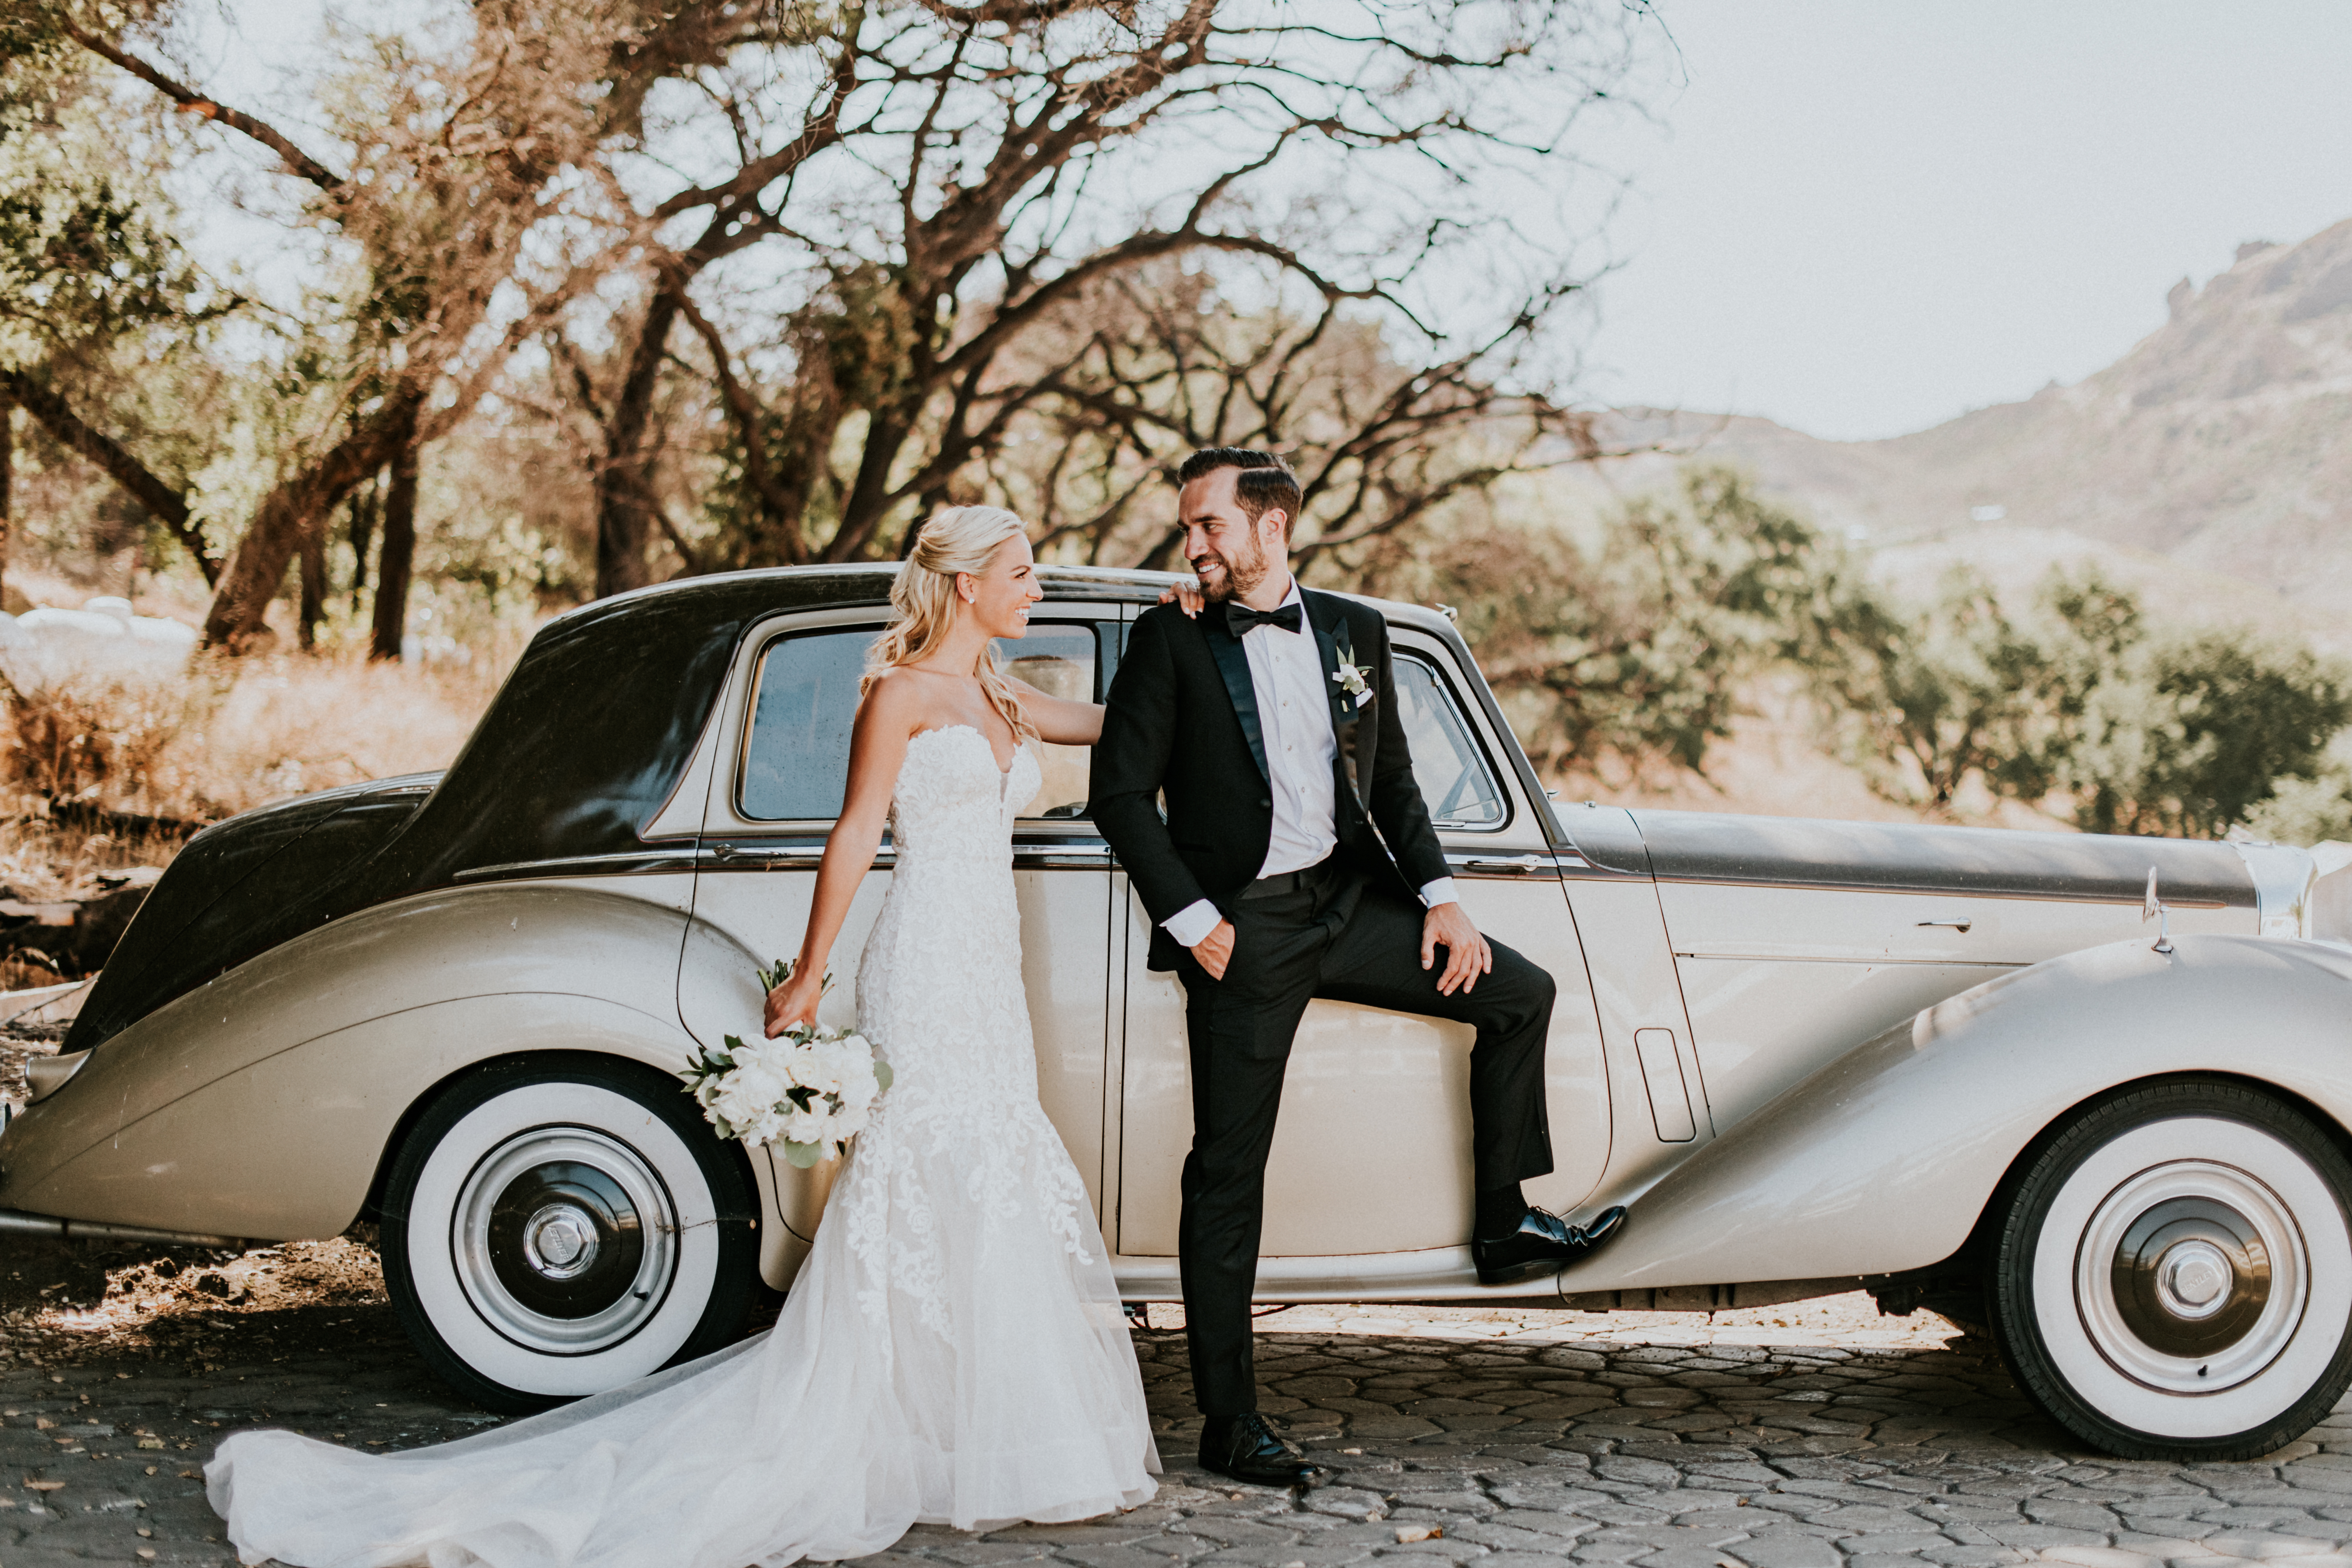 bride and groom posed by car wedding day wedding photography los angeles